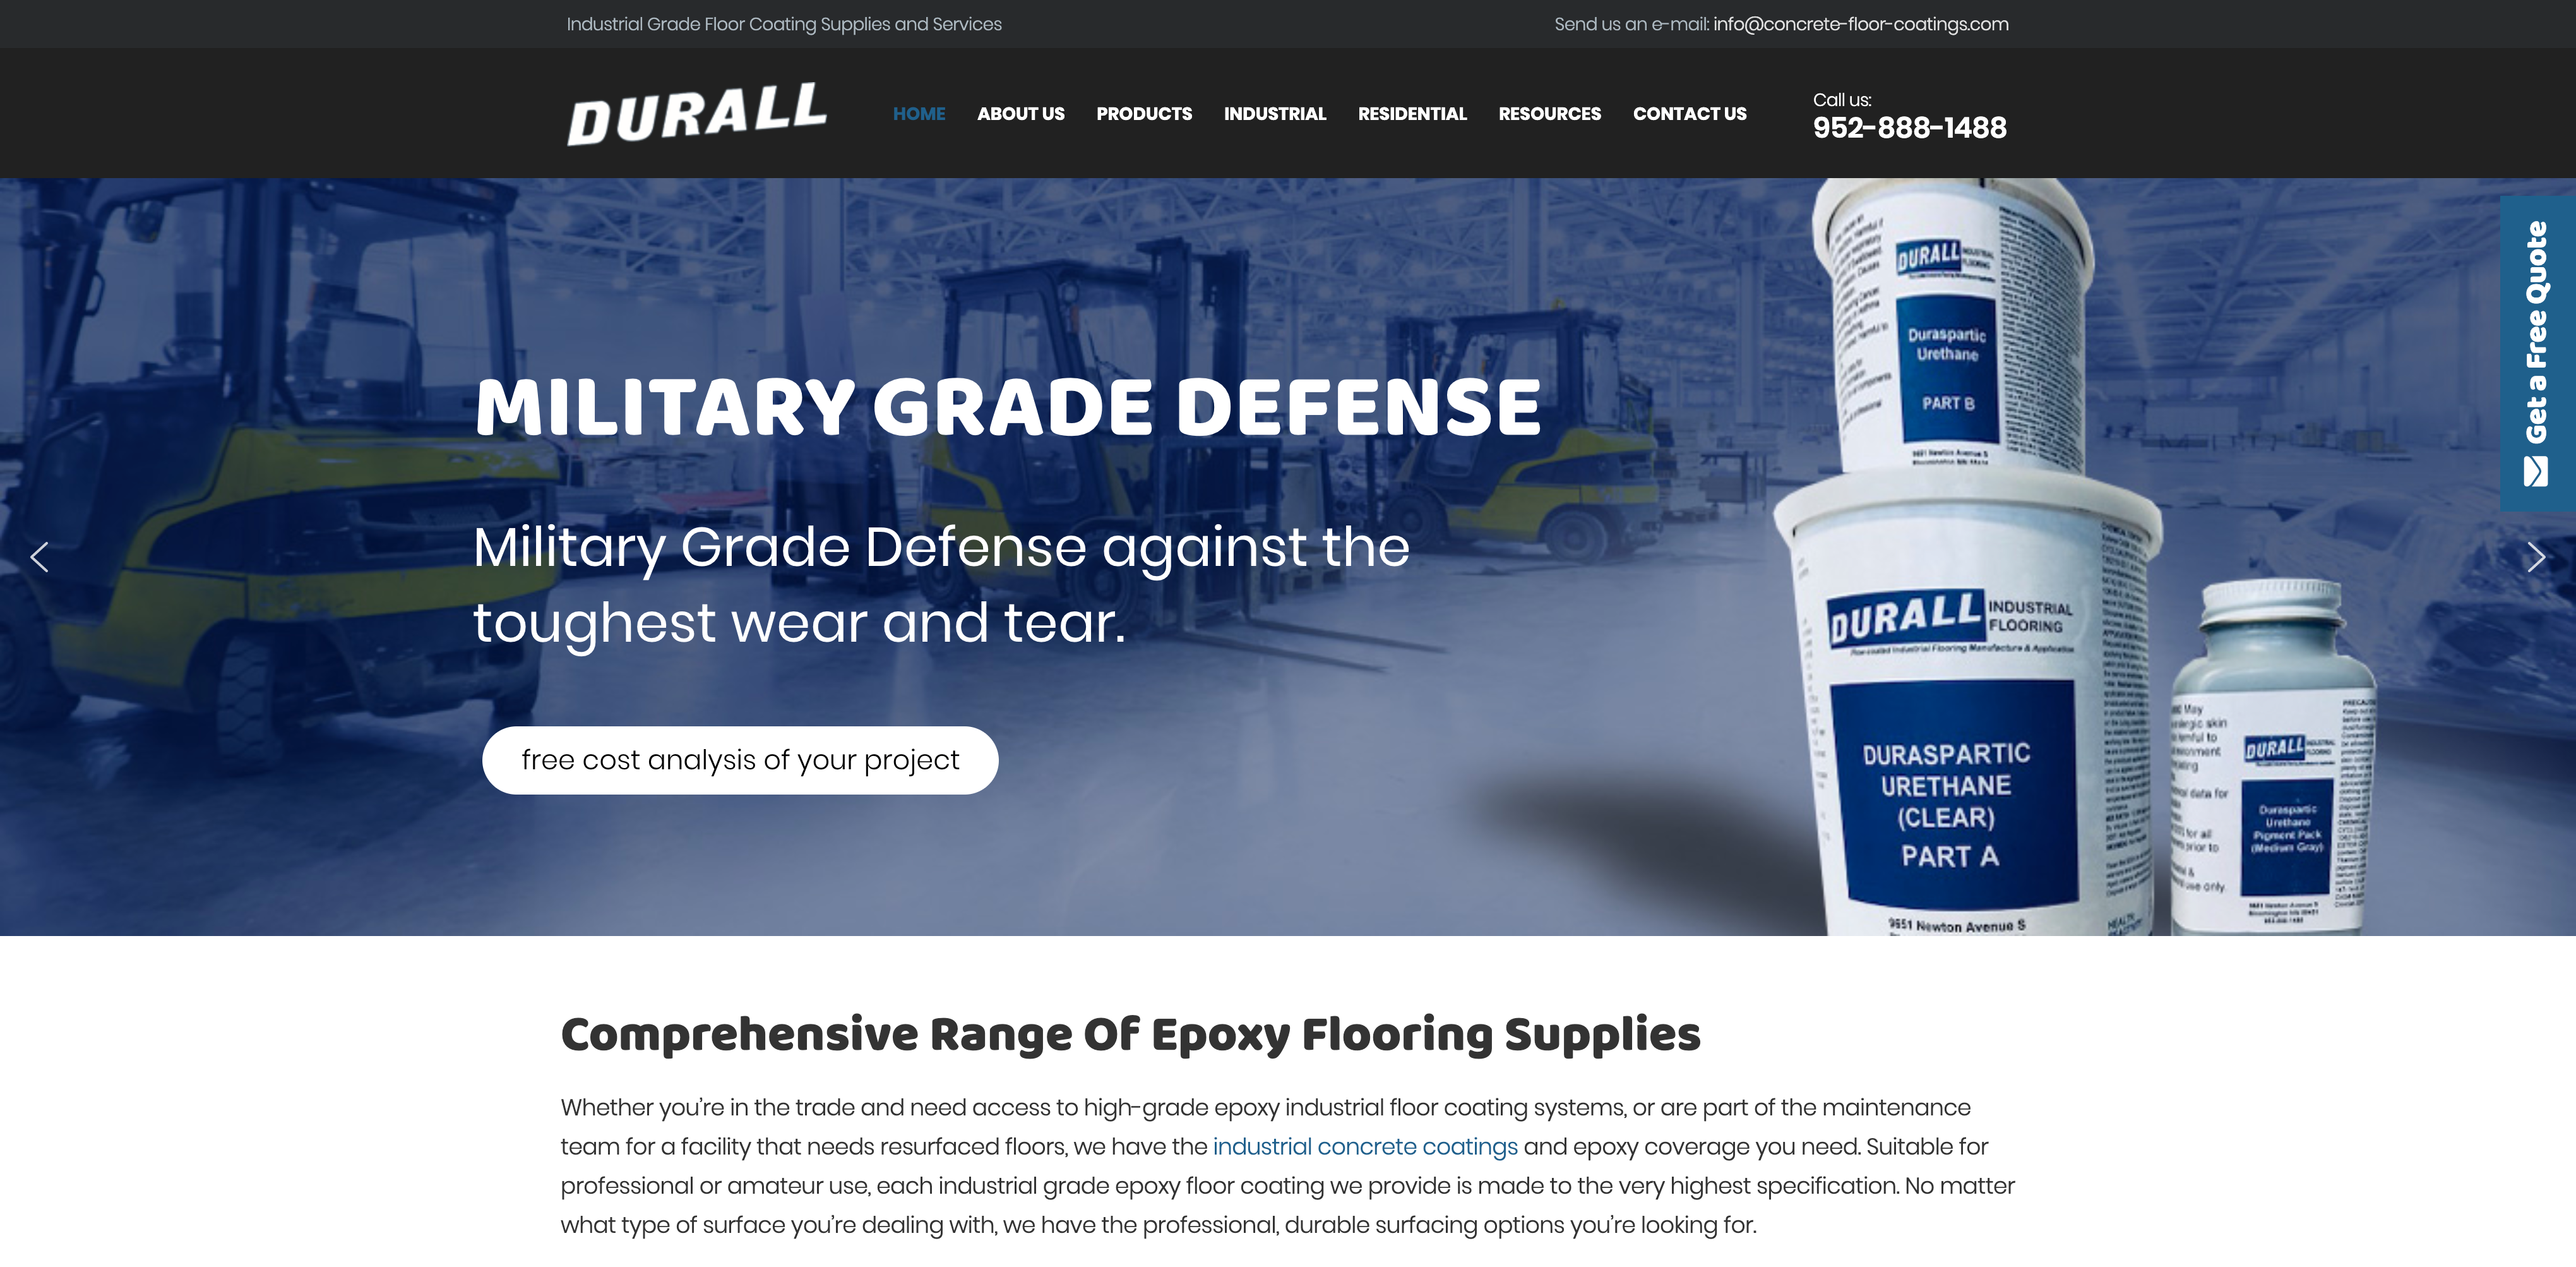 Durall Manufacturing | Agency Jet